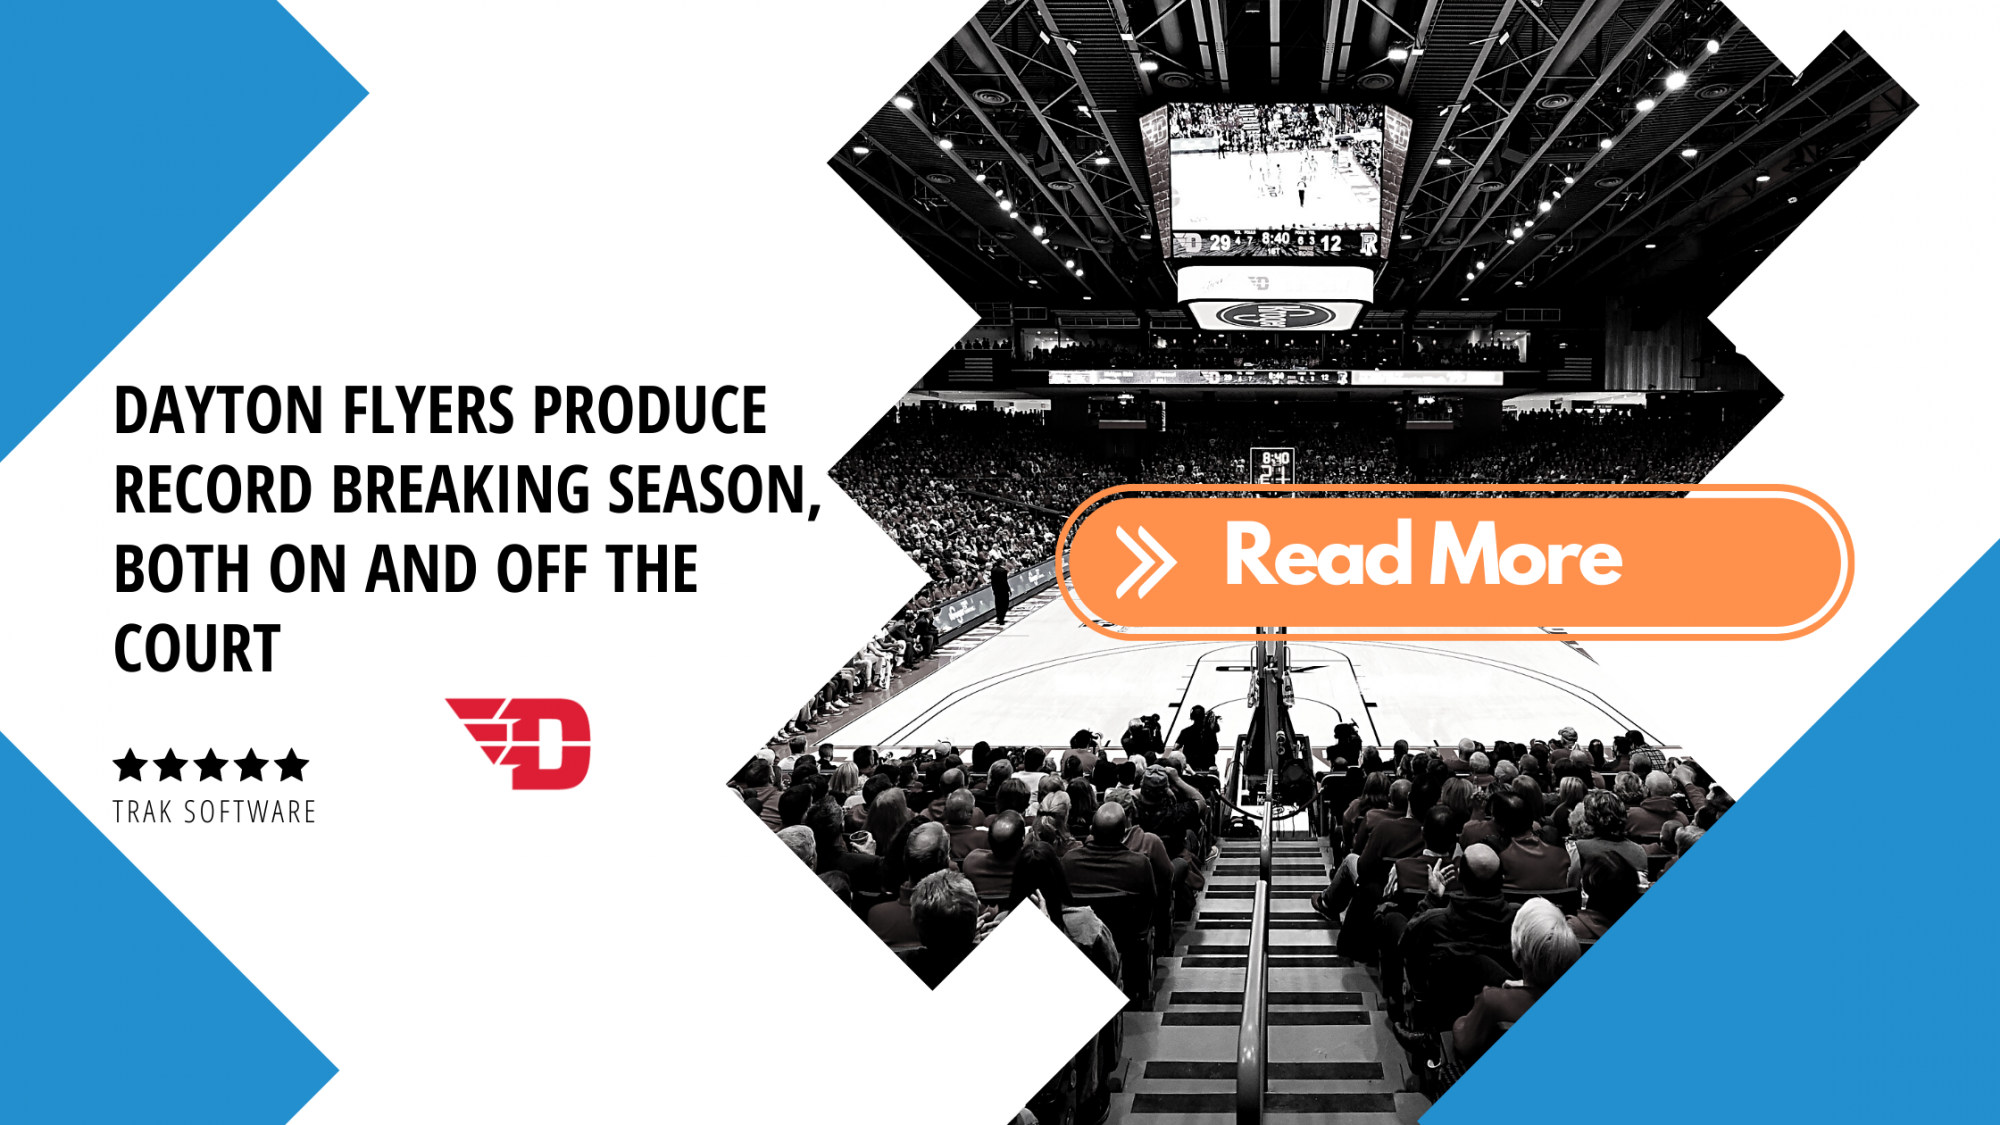 Dayton Flyers Customer Story 1